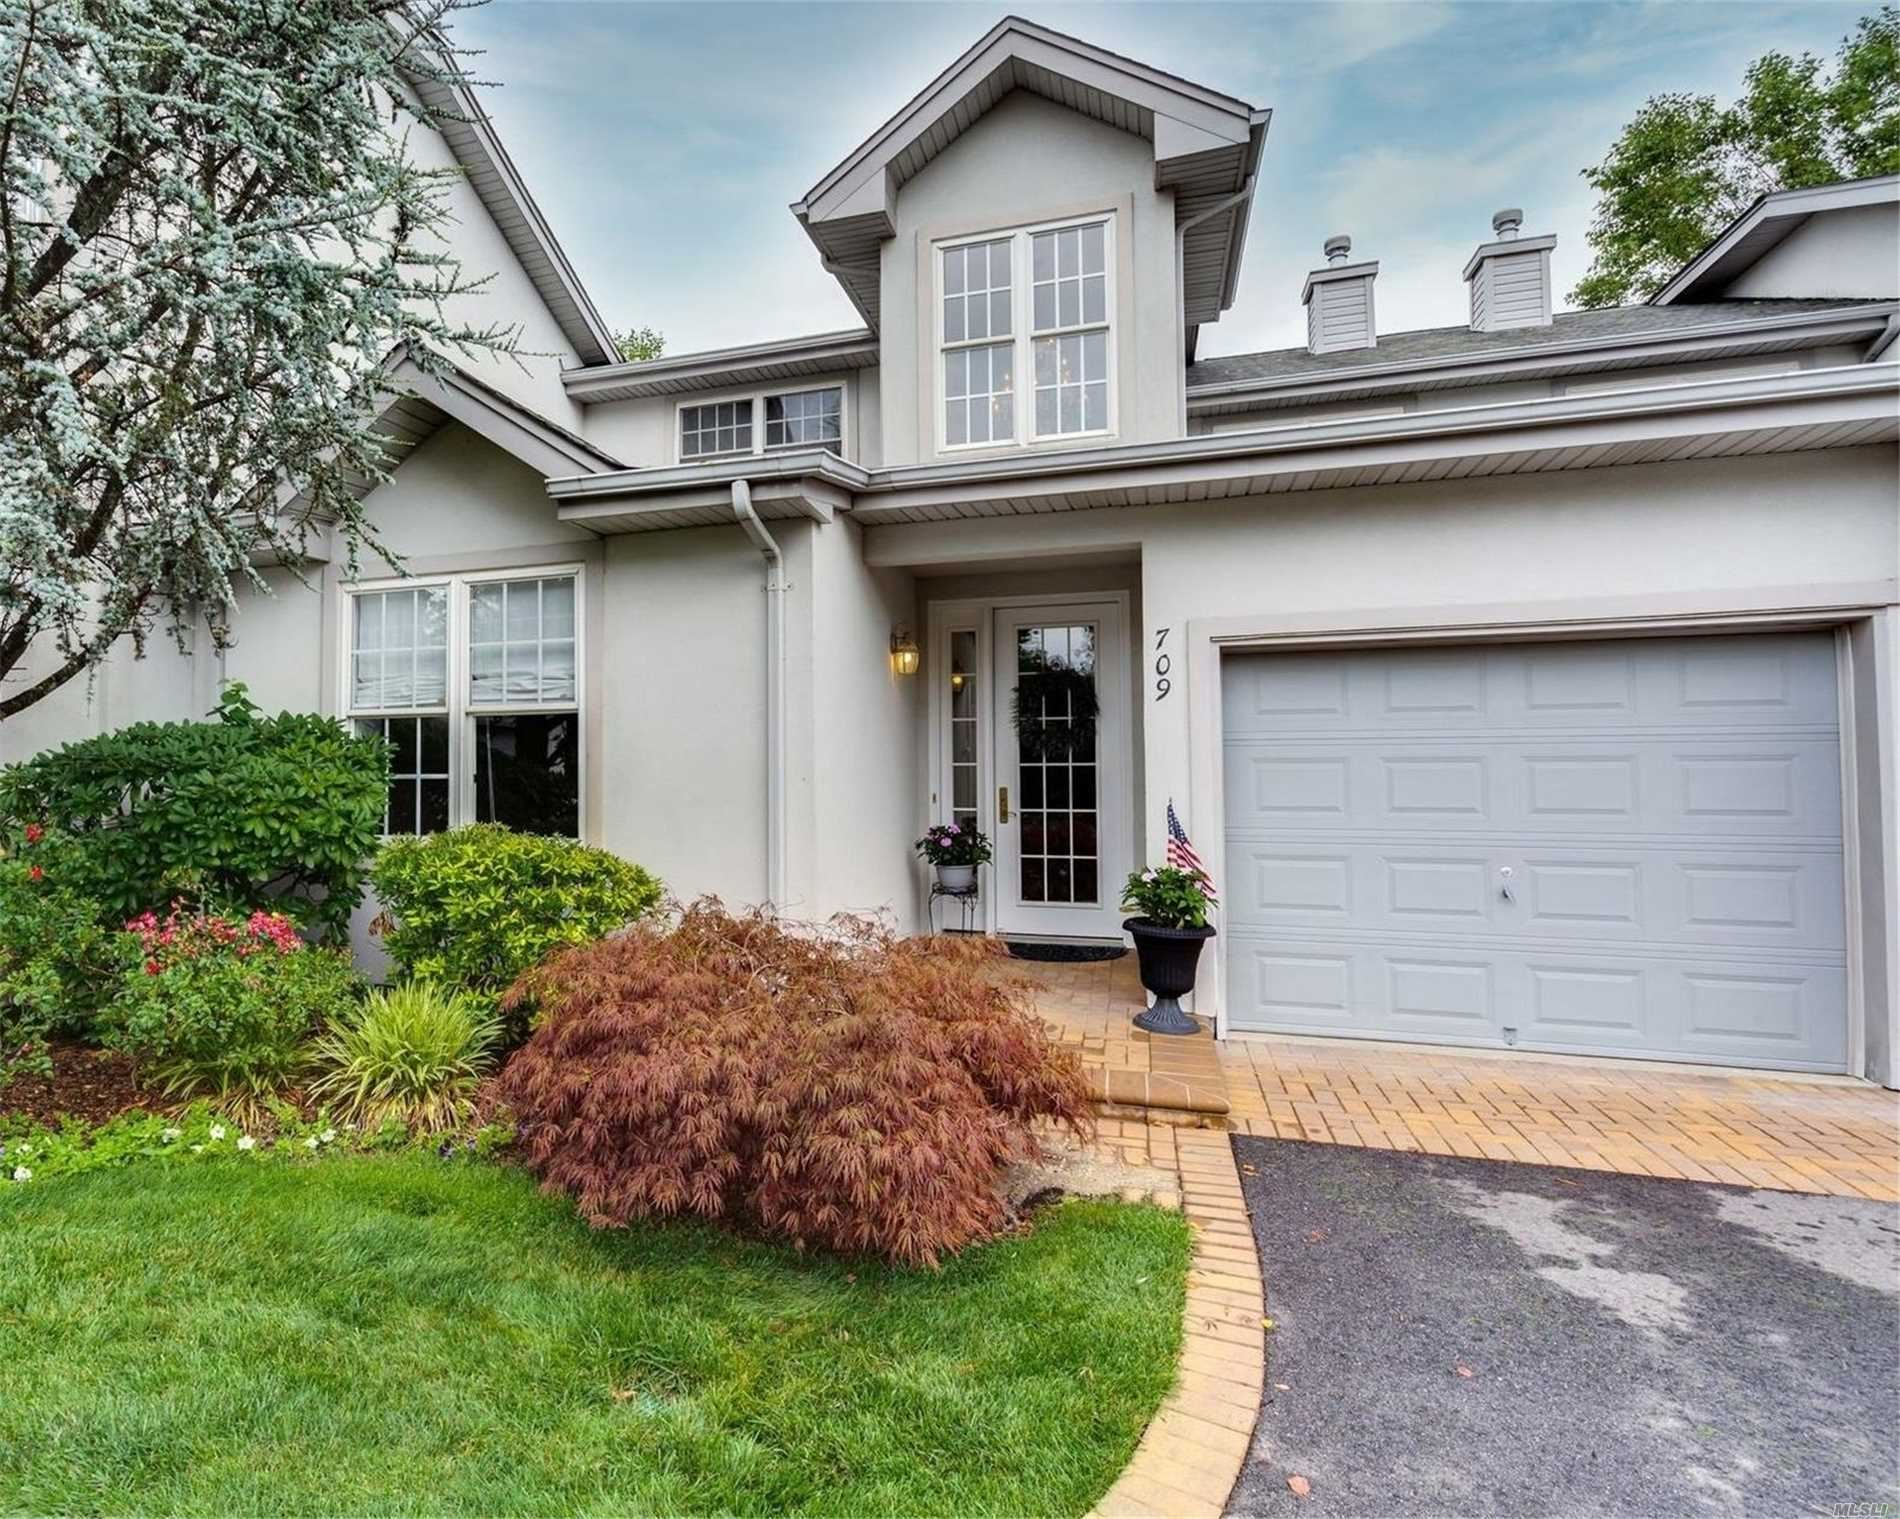 709 Balfour Pl, Melville, NY 11747 - MLS#: 3234449